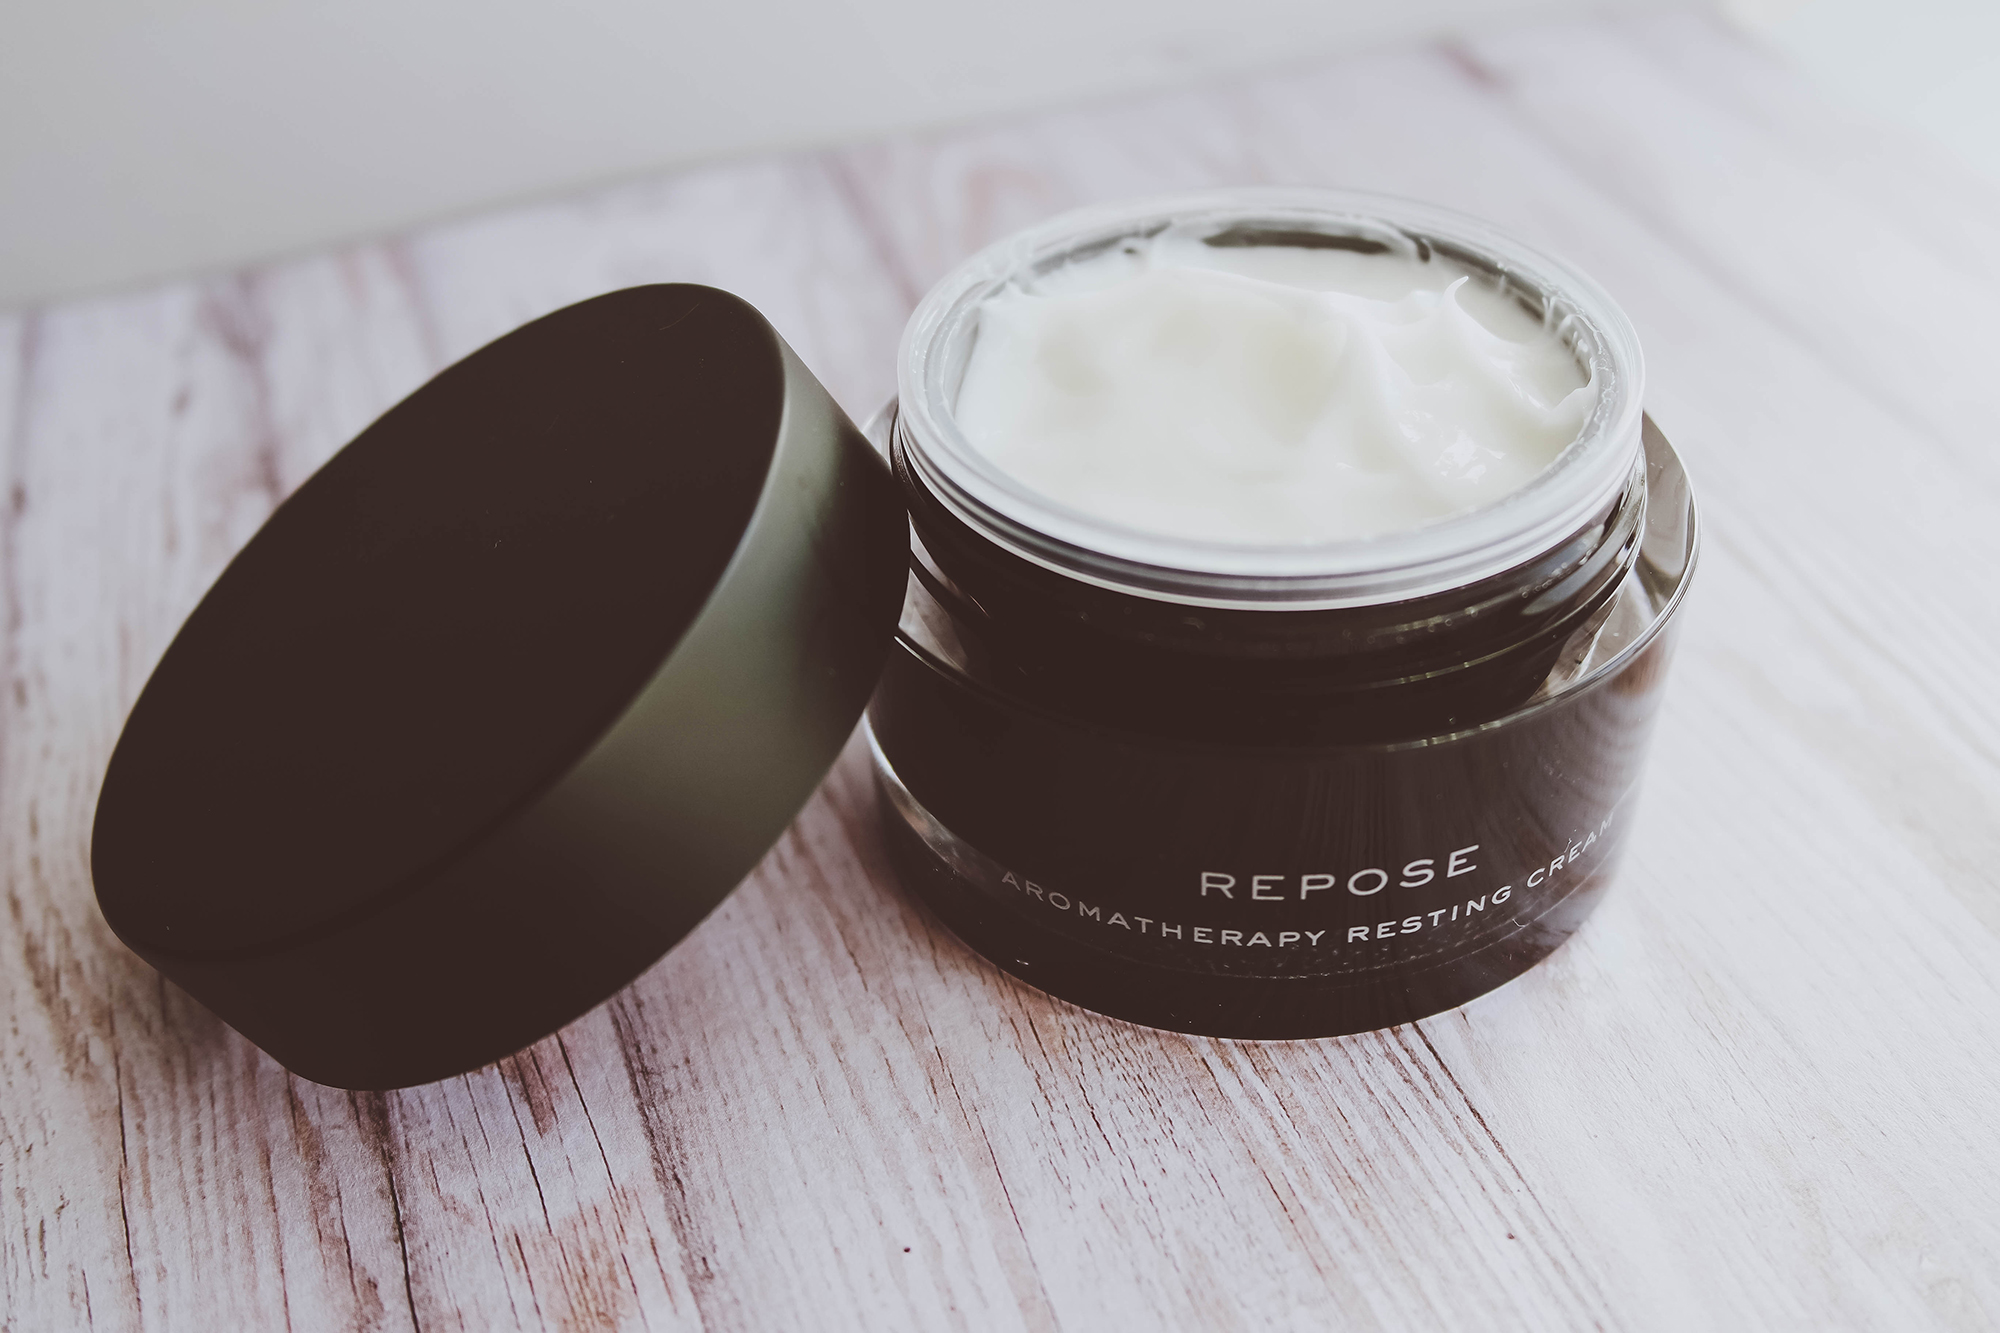 Temple Spa's Repose Aromatherapy Resting Cream